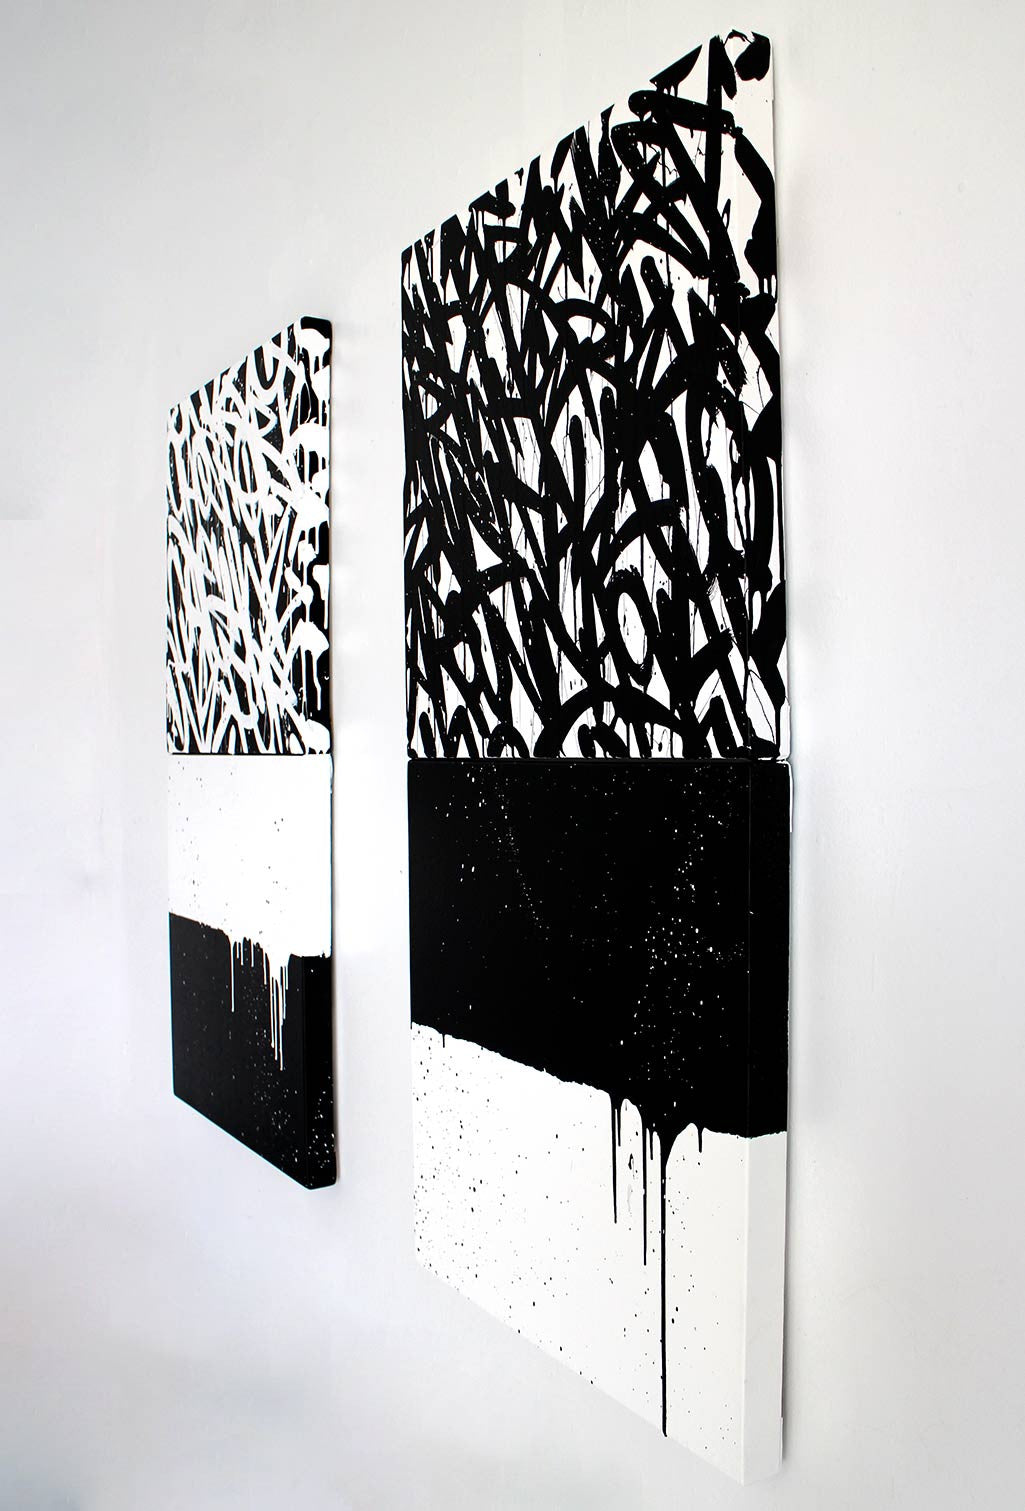 STACKS (DARK) - 22X44 Diptych - Bisco Smith